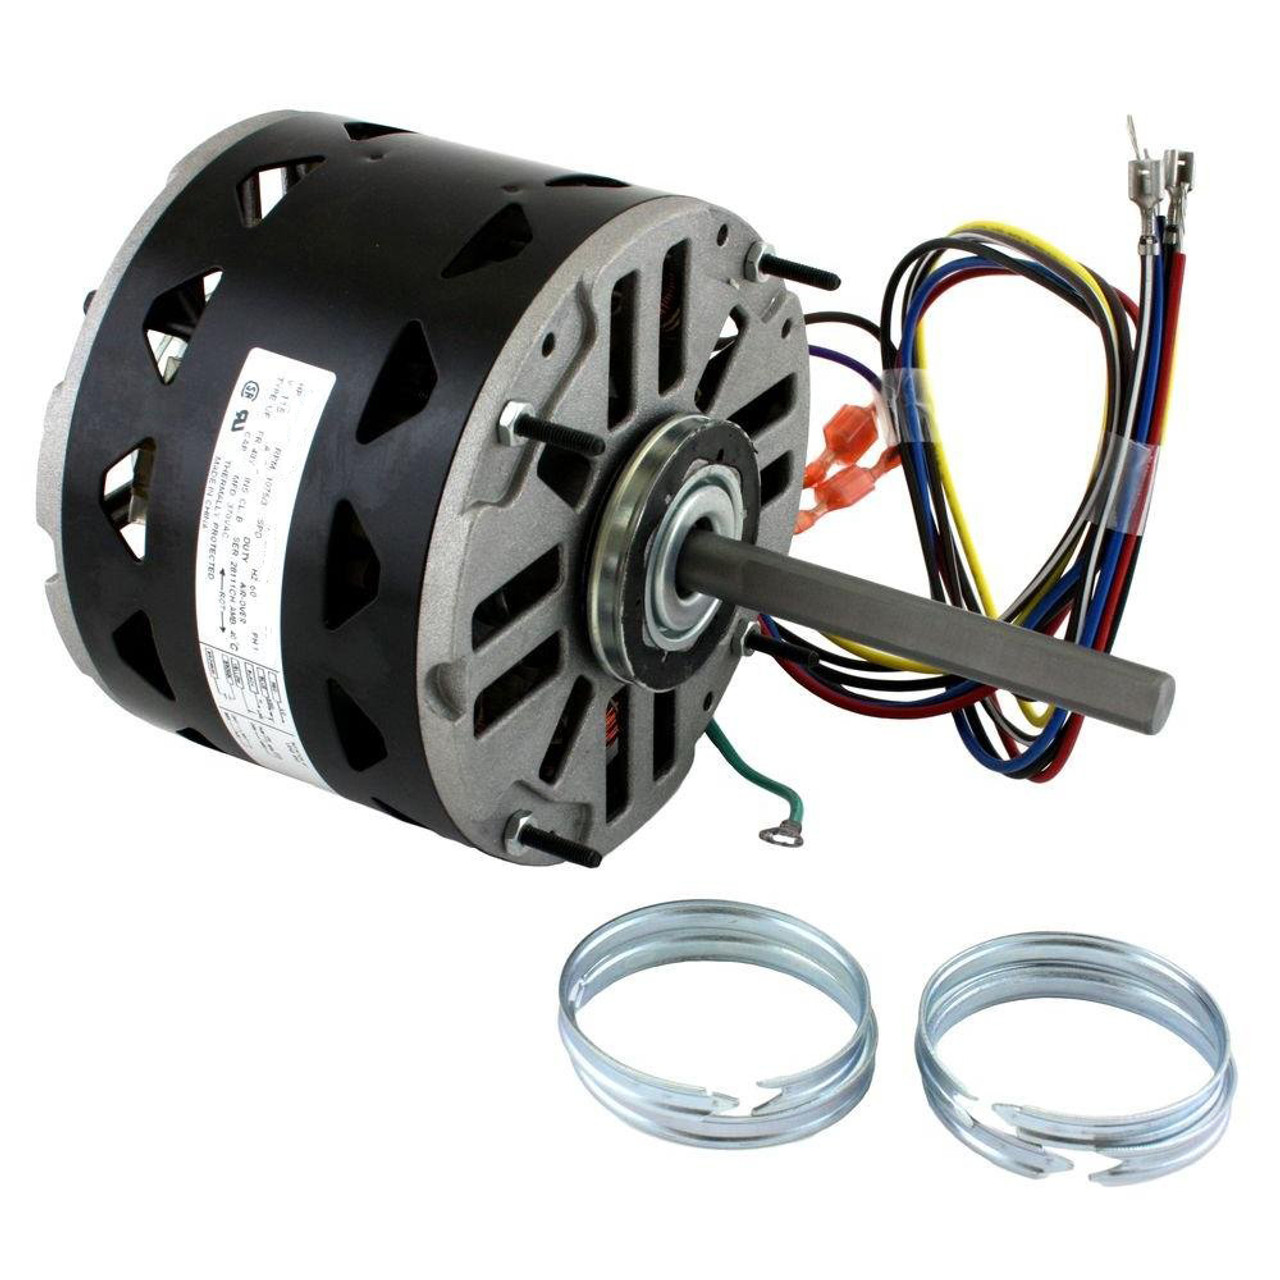 Century Dl1056 Wiring Diagram Simple Post A New Furnace Motor 1 2 Hp 1075 Rpm 3 Speed 48 Frame 115v Direct Drive Blower